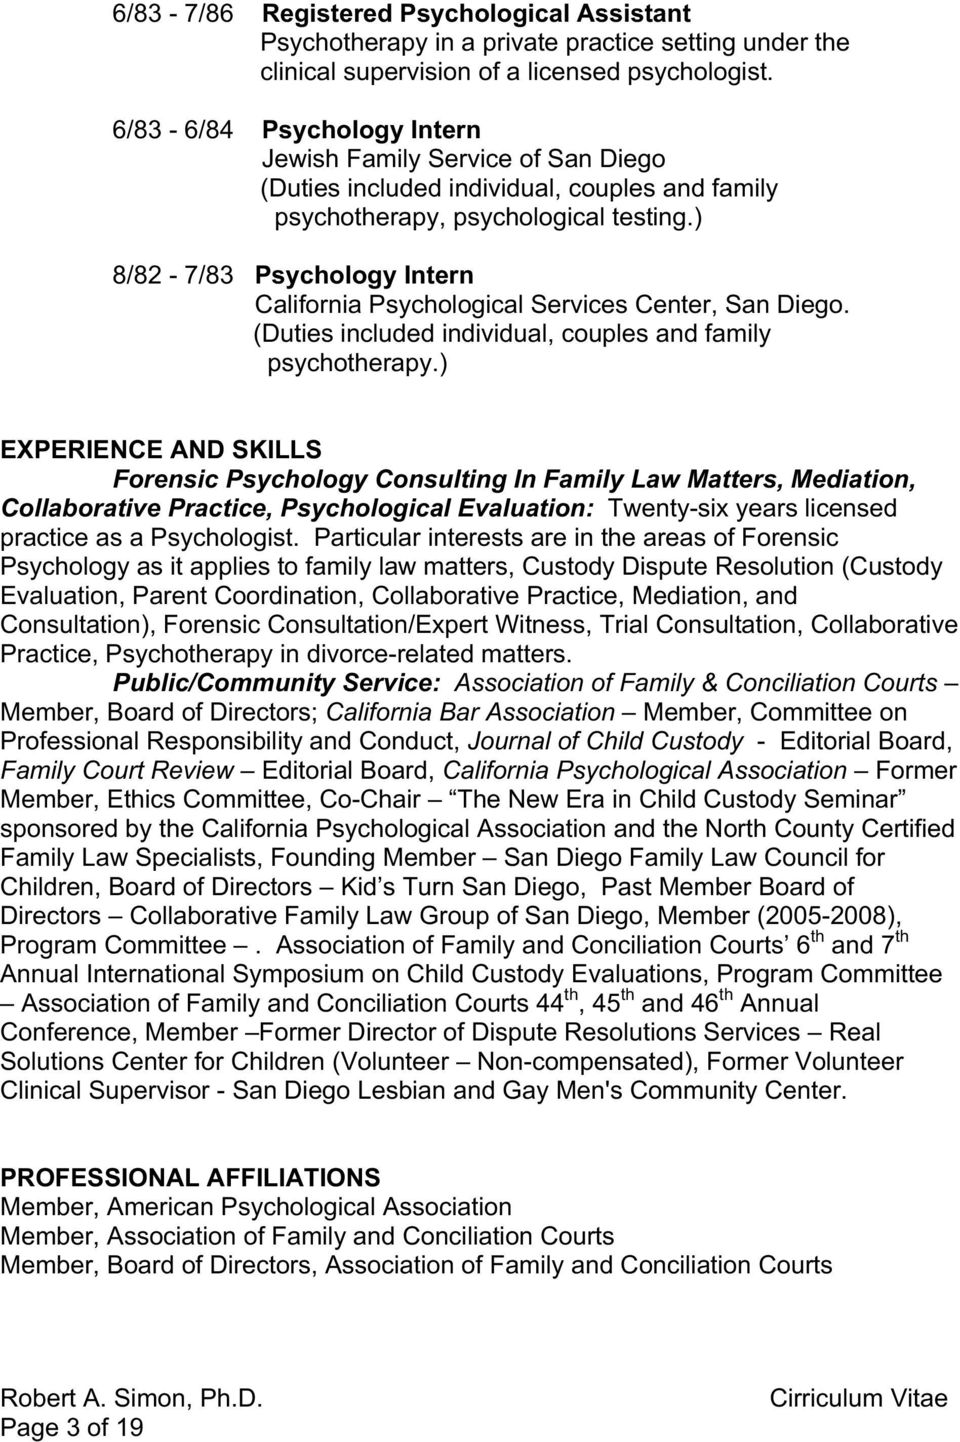 ) 8/82-7/83 Psychology Intern California Psychological Services Center, San Diego. (Duties included individual, couples and family psychotherapy.